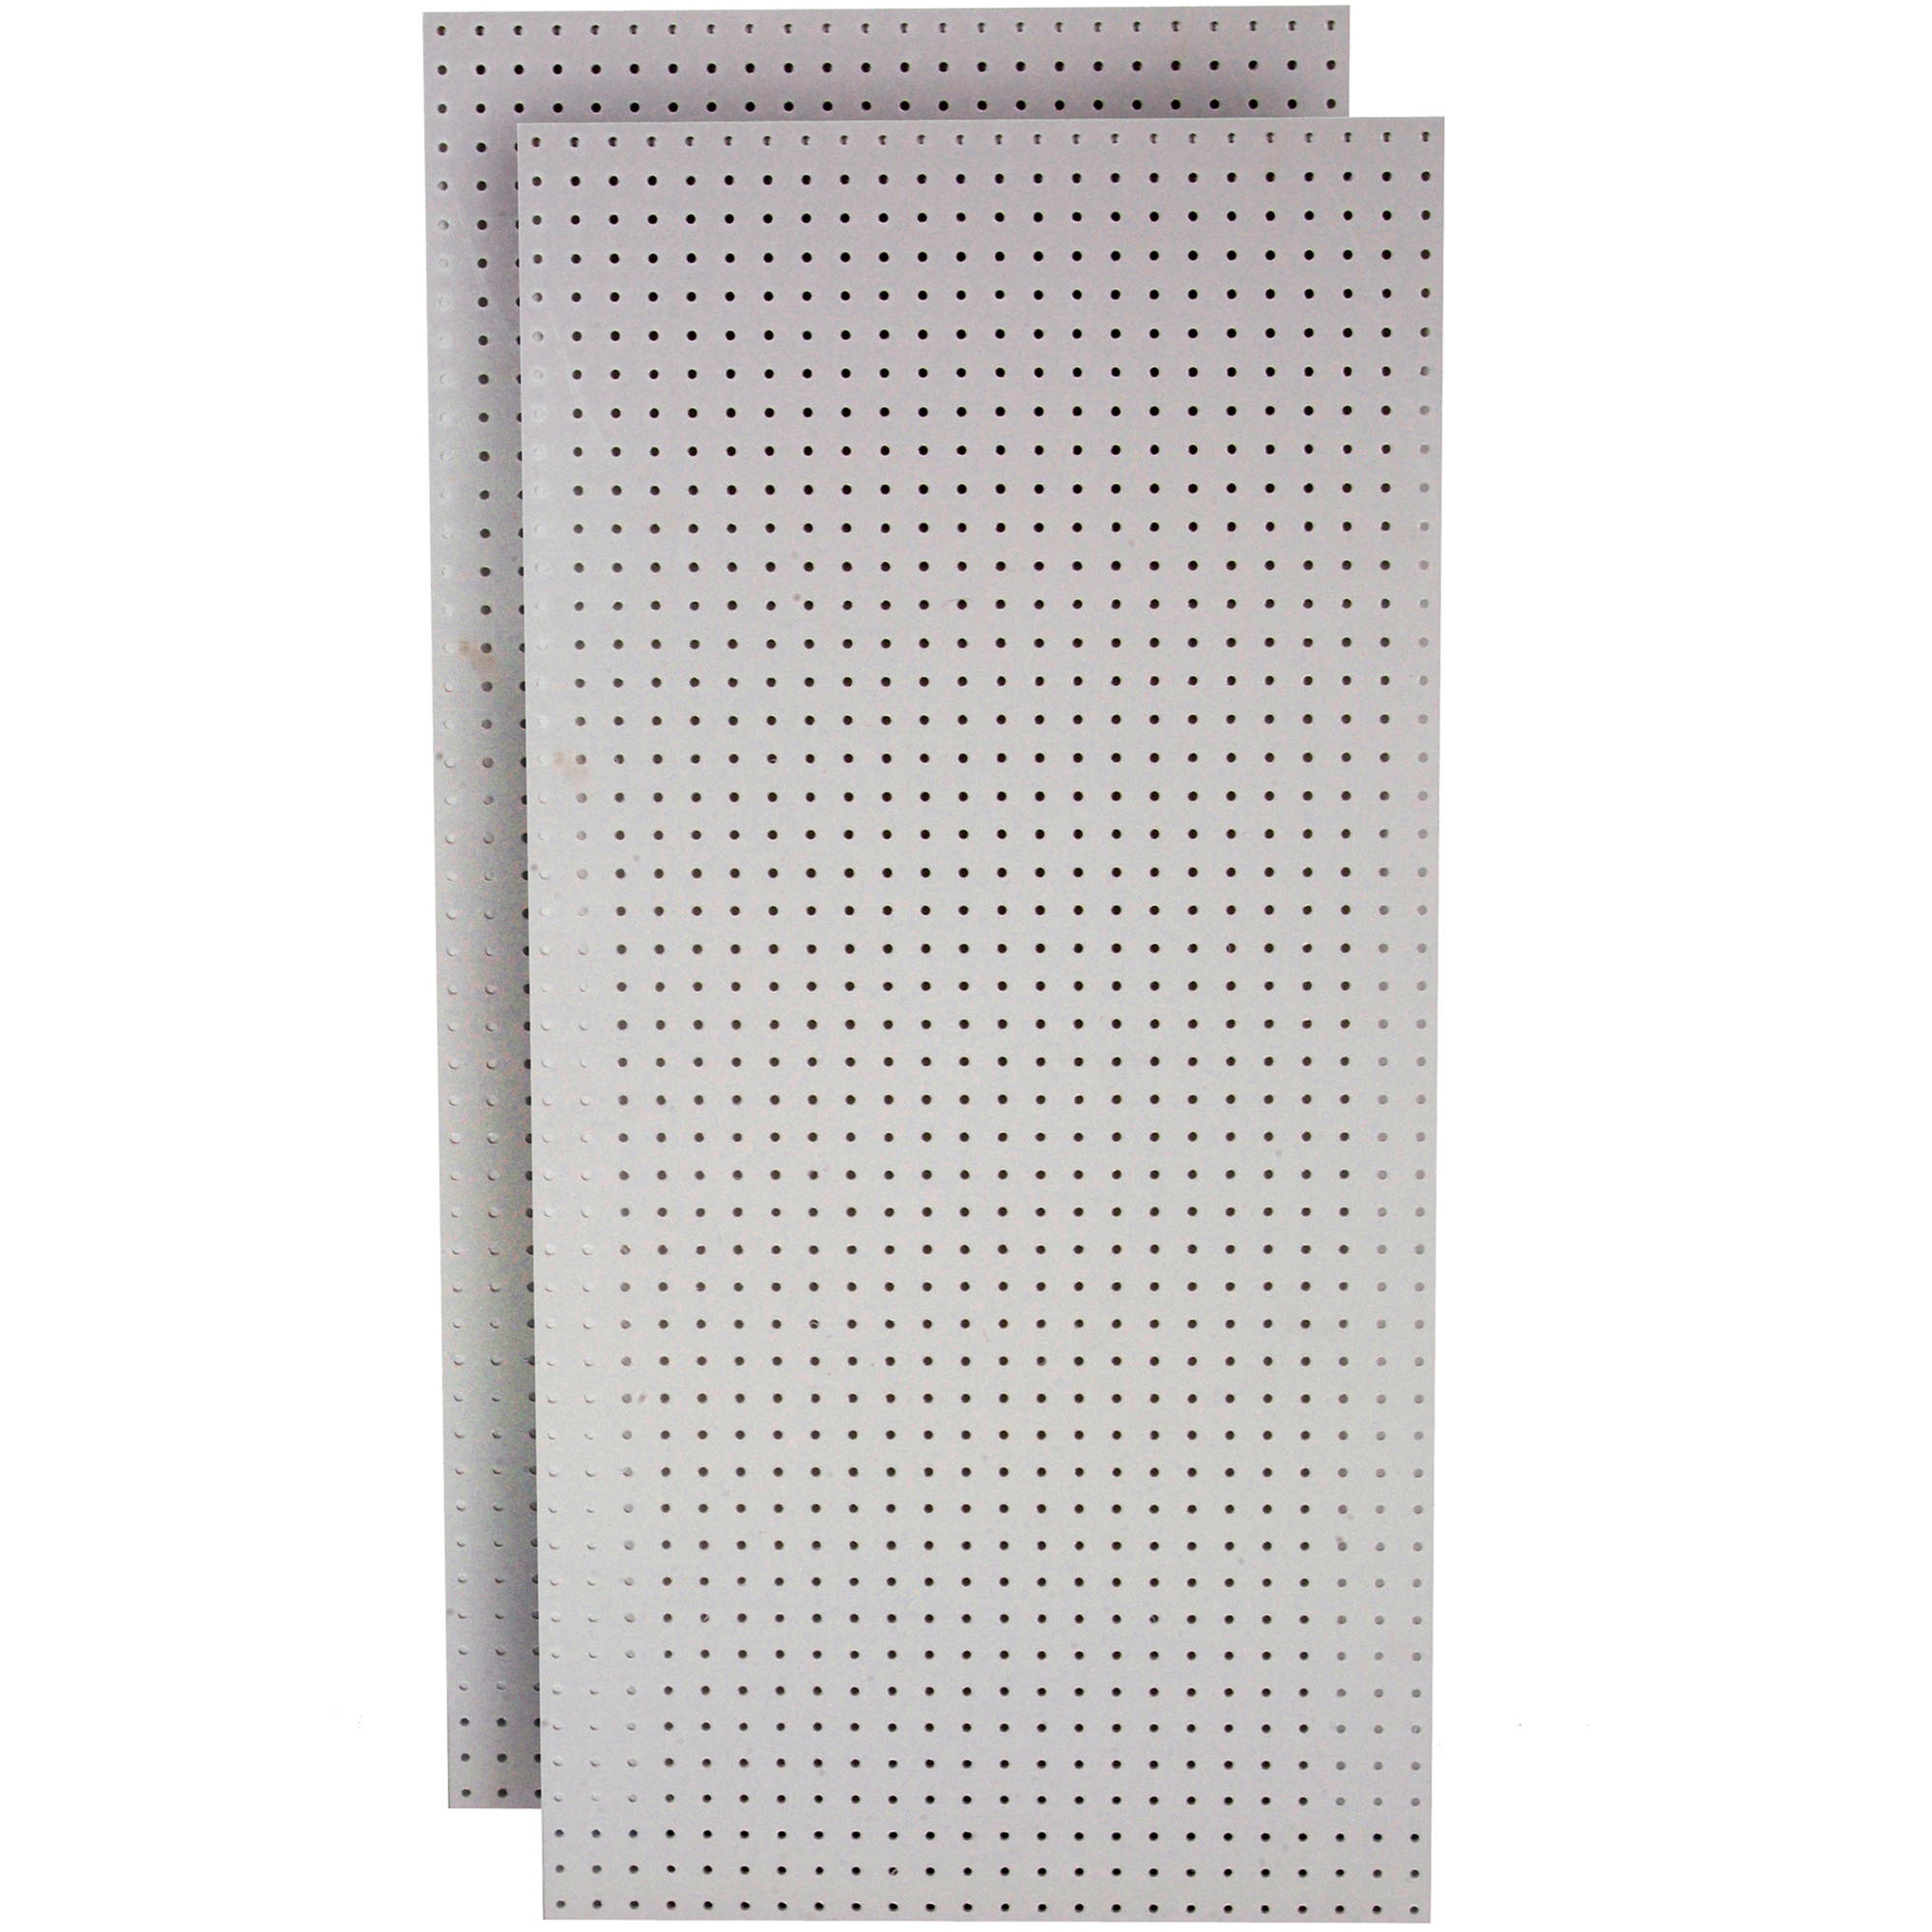 """DuraBoard (2) 24""""W x 48""""H x 1/4""""D White Polypropylene Pegboards with 9/32"""" Hole Size and 1"""" O.C. Hole Spacing"""